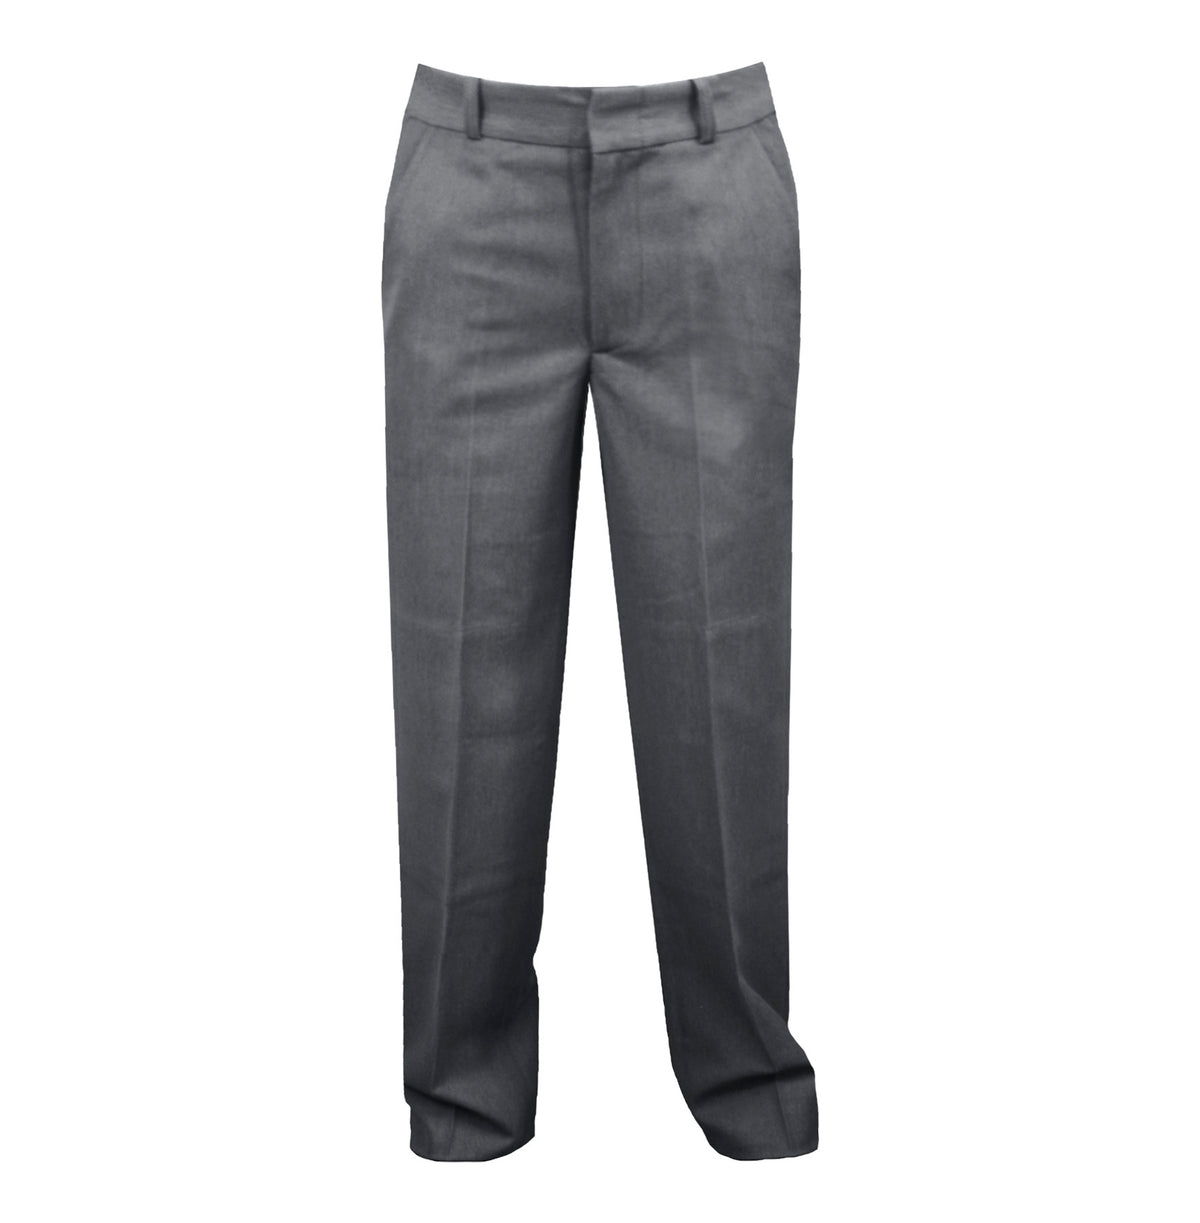 GREY MENS REGULAR BACK PANTS, POLY/VISCOSE, SIZE 30 AND UP